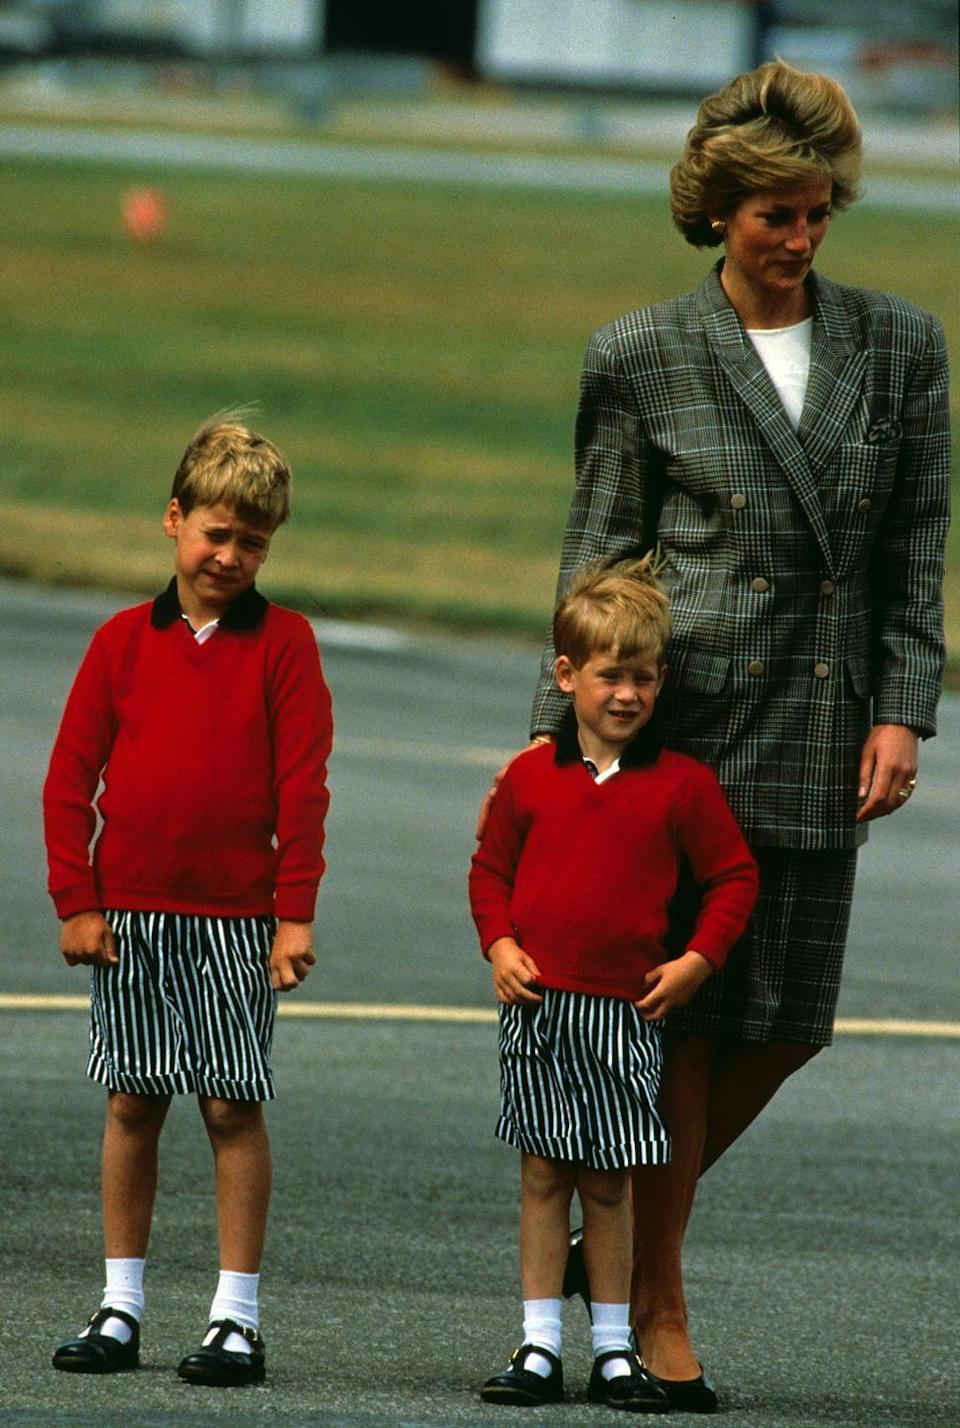 <p>With her boys in matching outfits, at Aberdeen Airport as they kick off yet another family holiday in Scotland.</p>